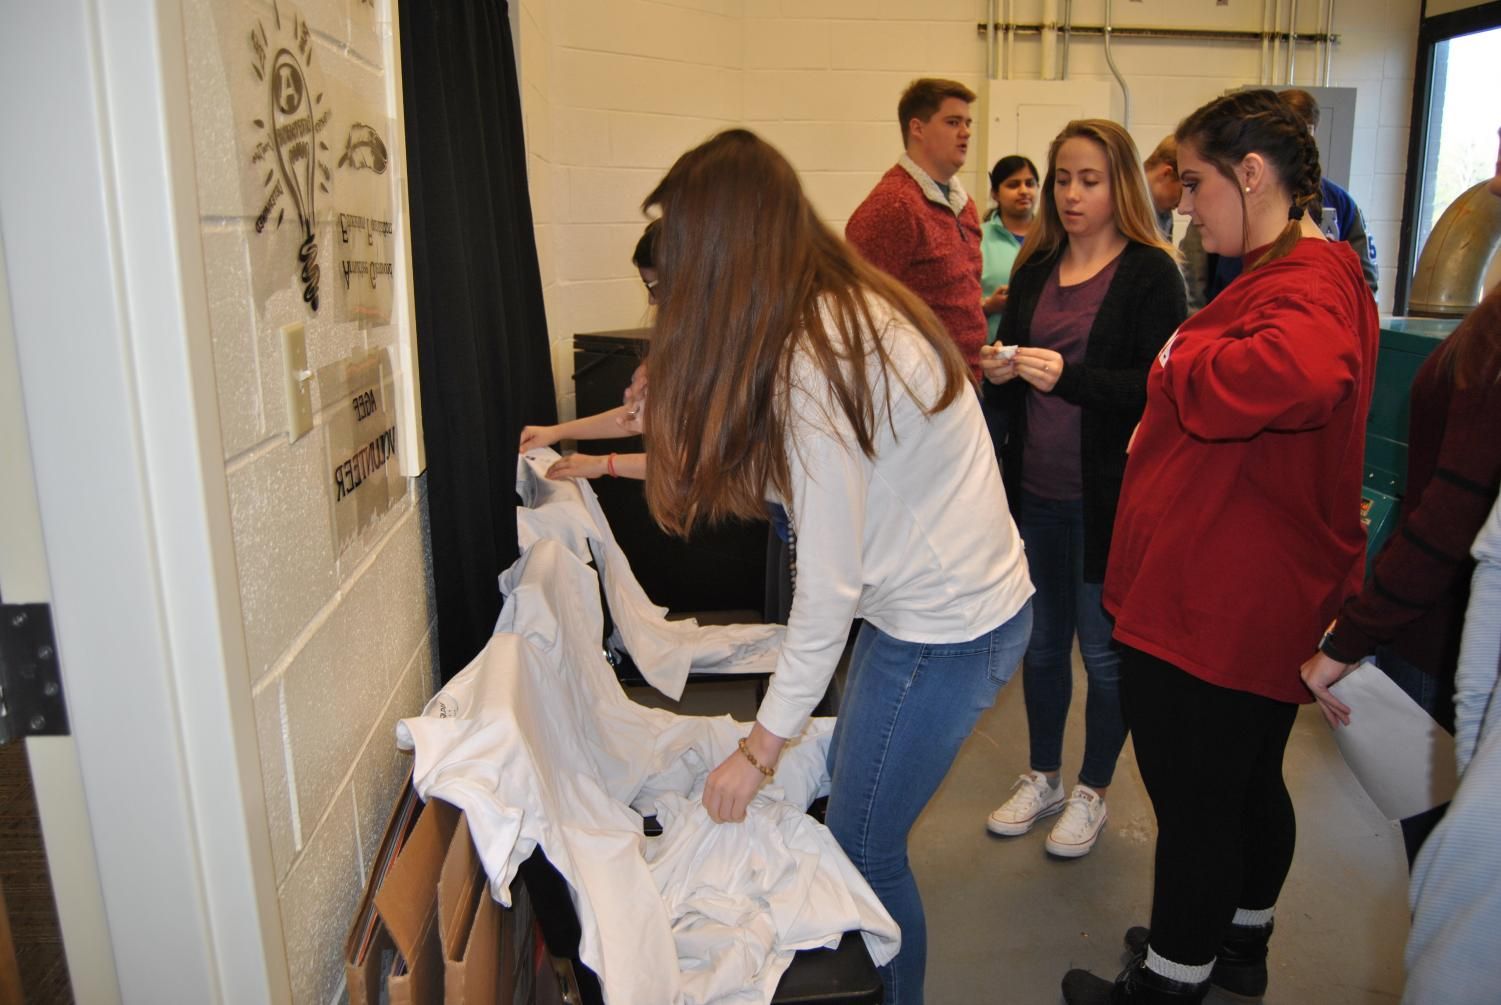 Students+Ally+O%27Neal%2C+Olivia+Crumbly%2C+and+Story+Hubbard+are+helping+fellow+students+by+folding+the+finished+t-shirts.